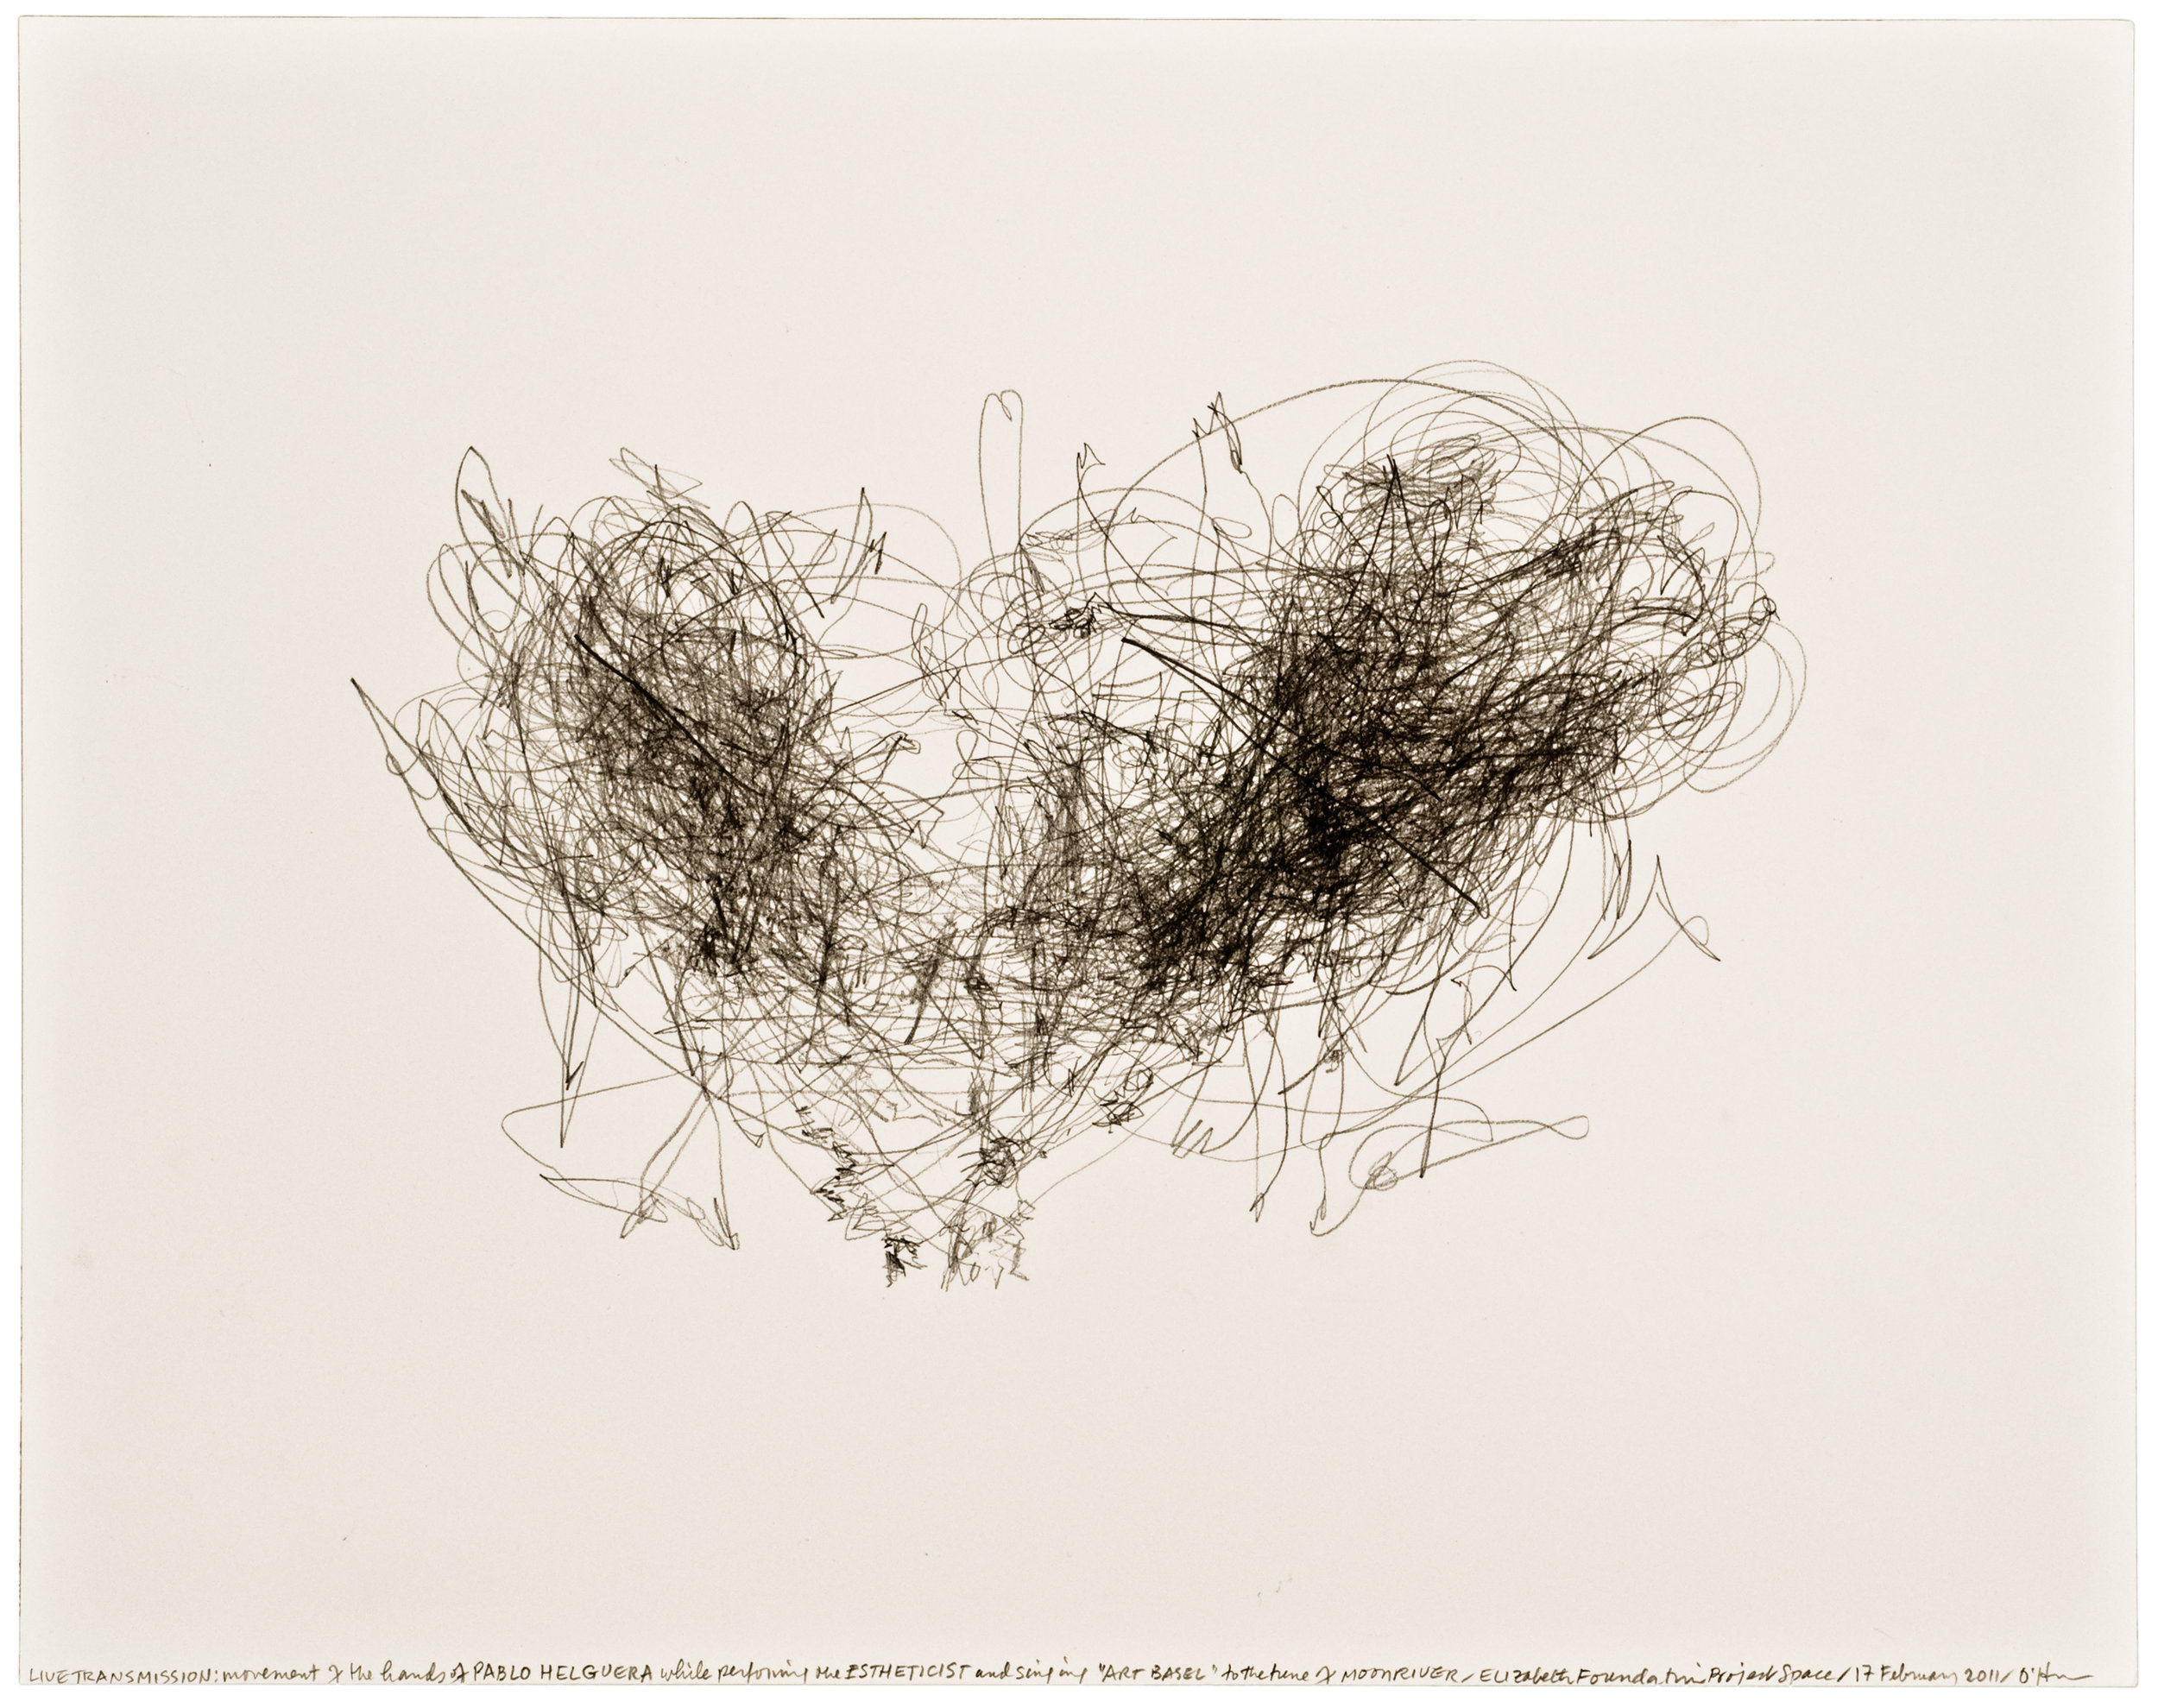 Morgan O'Hara,  LIVE TRANSMISSION: movement of the hands of PABLO HELGUERA while performing The Estheticist and singing Art Basel to the tune of Moonriver / Elizabeth Foundation for the Arts Project Space / 17 February 2011,  11 x 14 in., Graphite on paper ©2017 Morgan O'Hara, Courtesy Fou Gallery